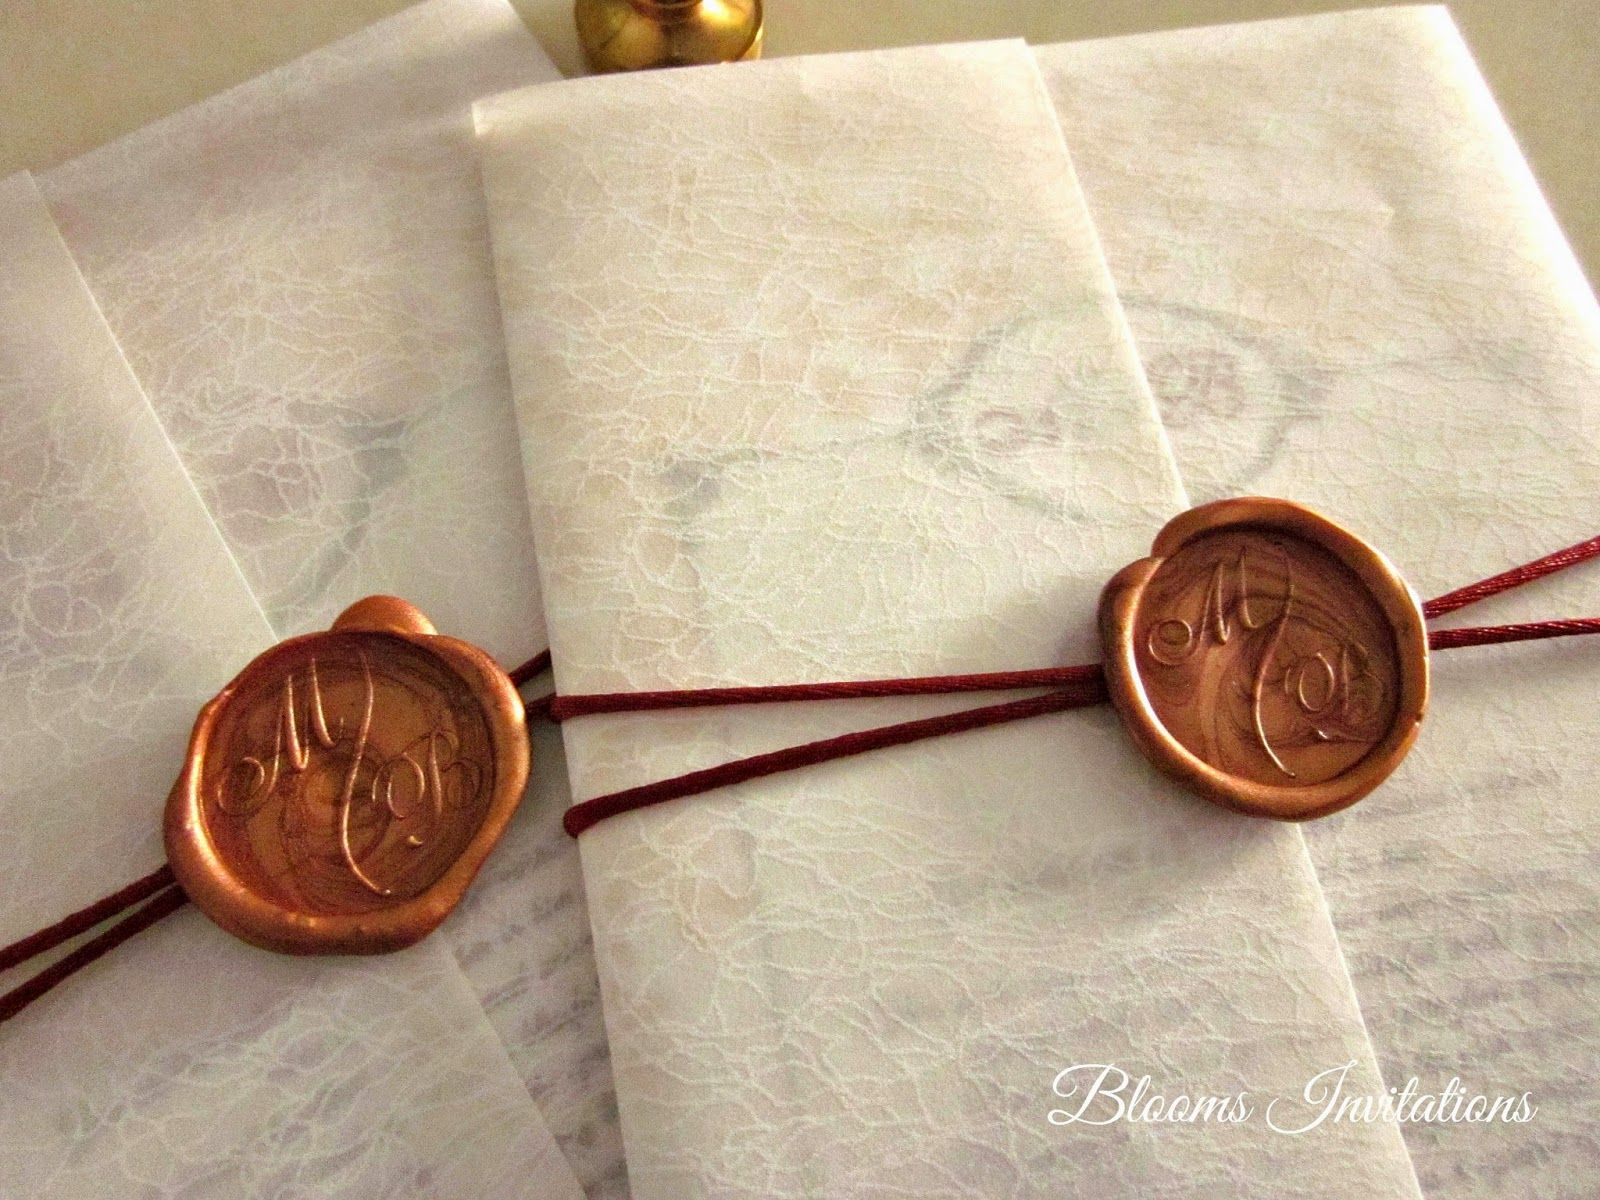 Wax Seal Wedding Invitation can get them at Art Friends at the Curve